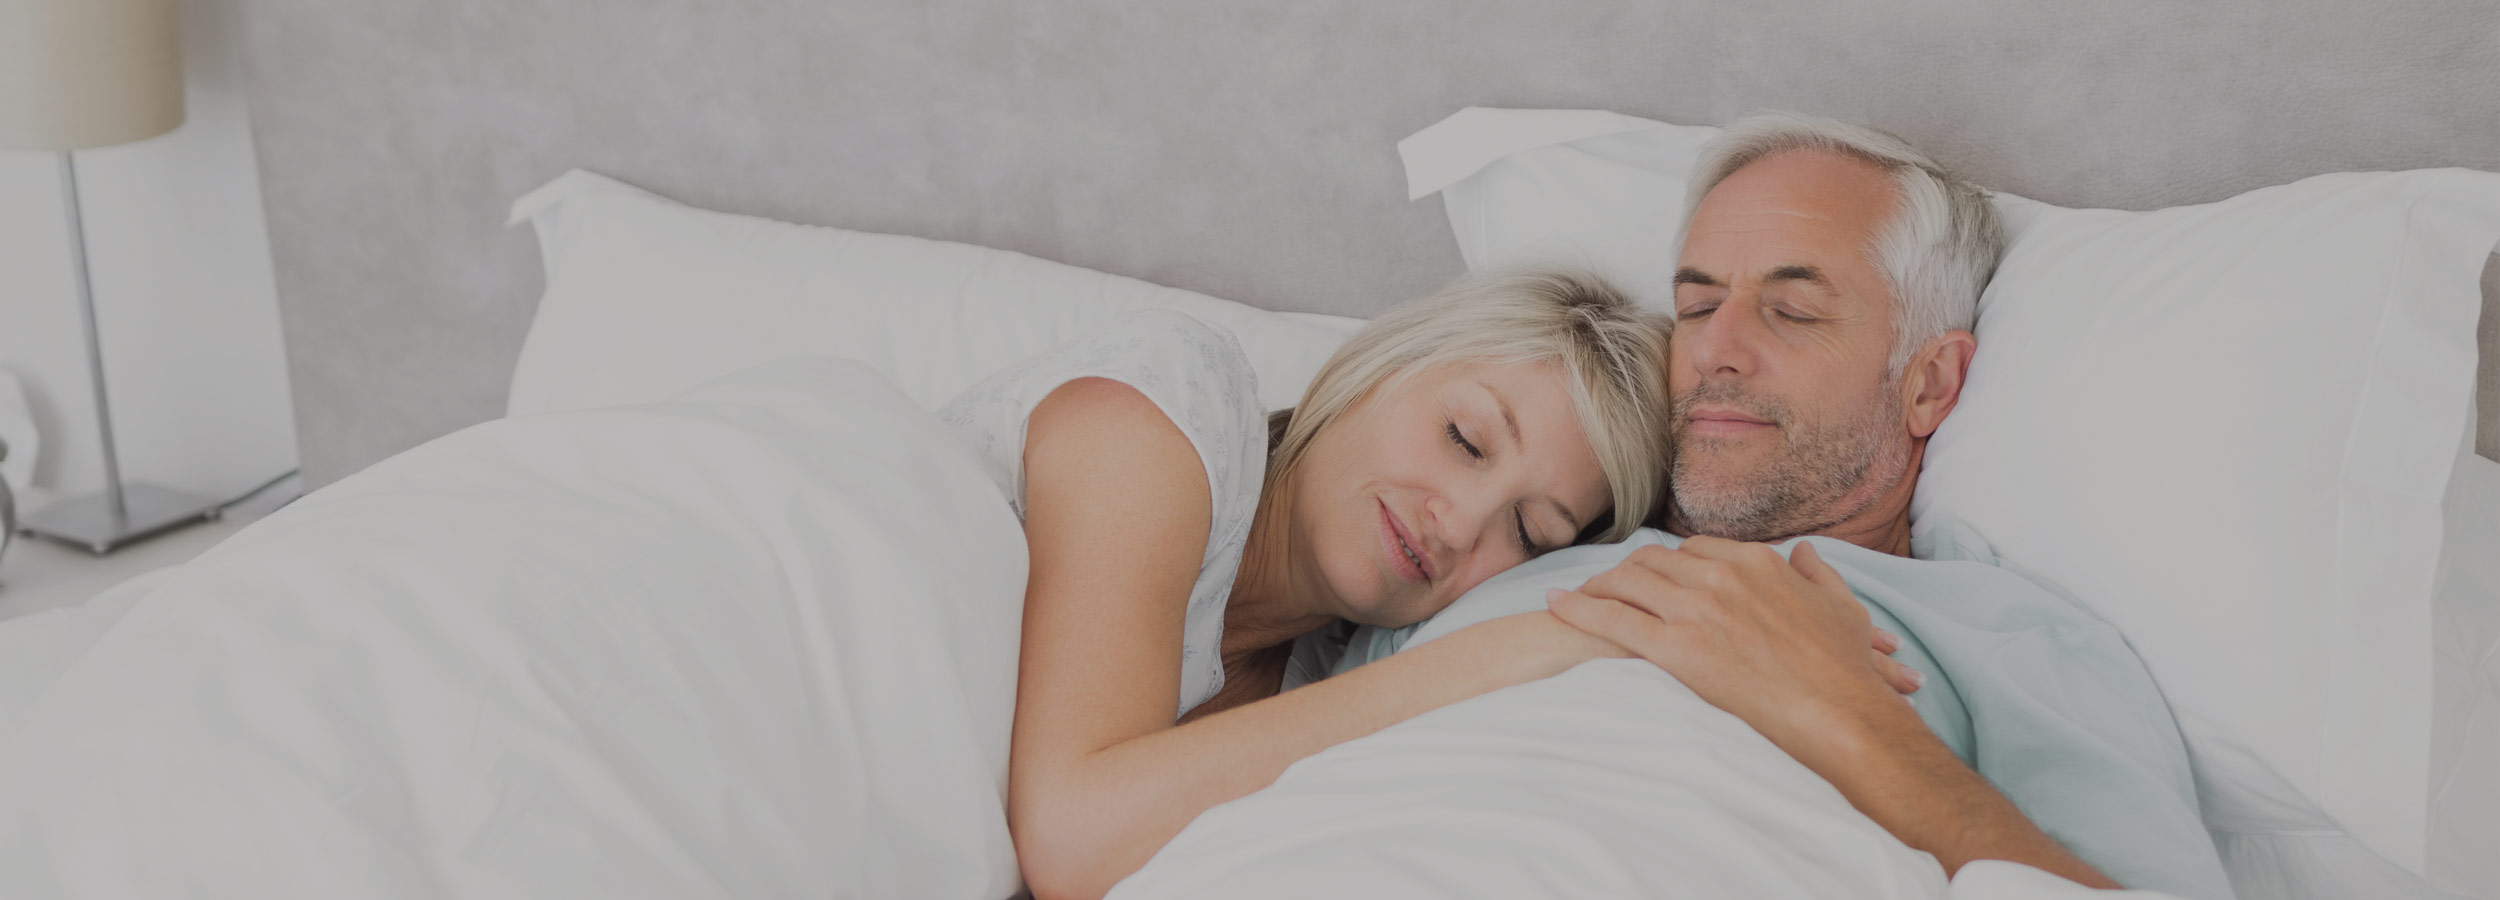 Stop Snoring Today!   FREE SHIPPING ON ALL ORDERS   Buy Now